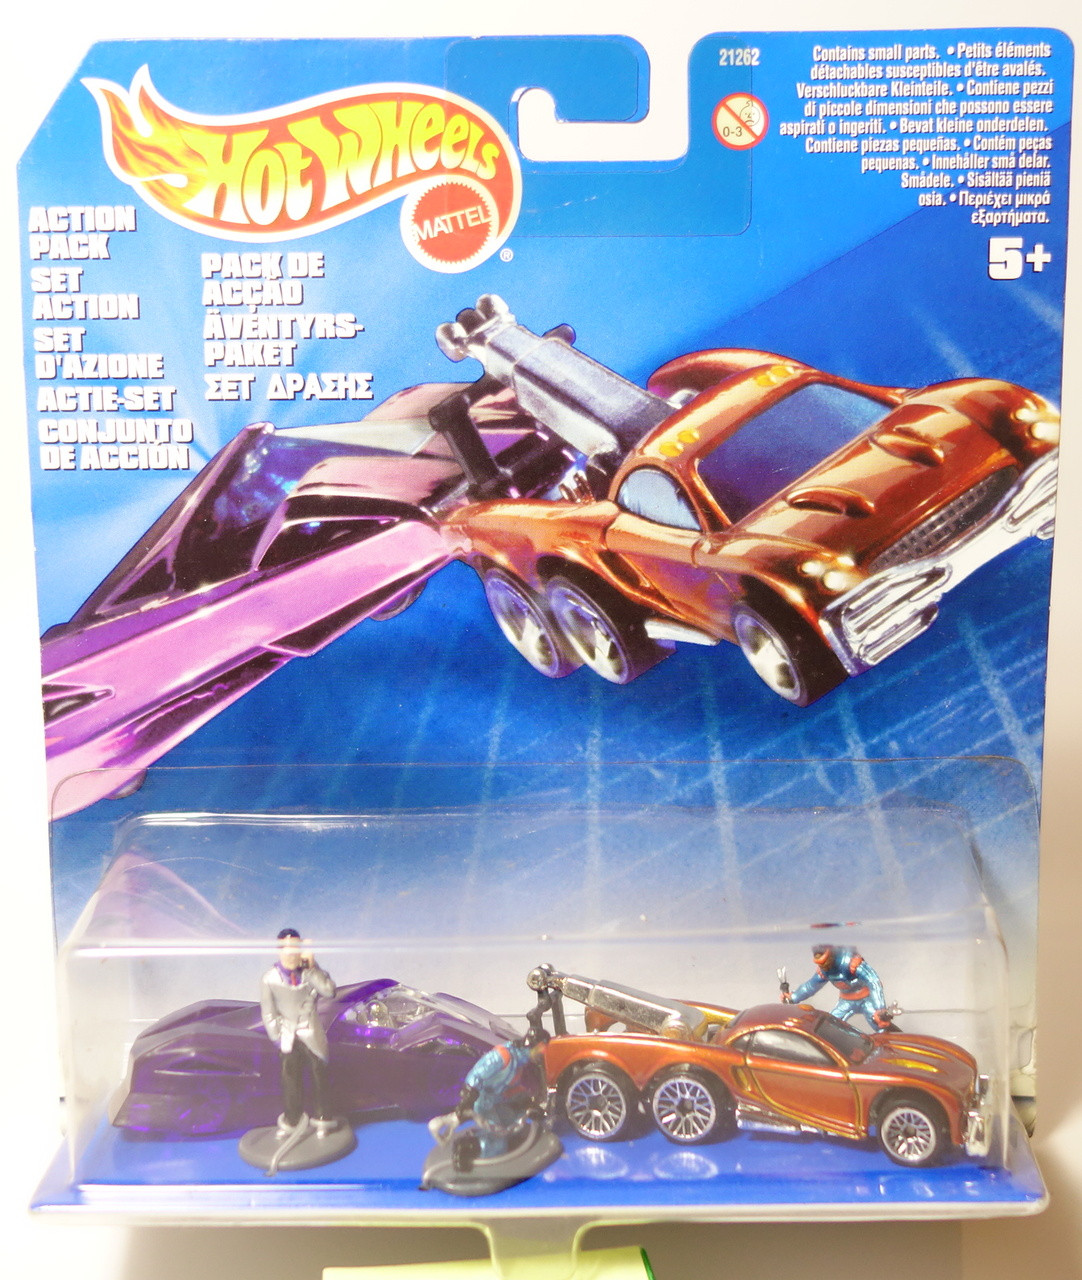 Wonderbaarlijk Hot Wheels International Action Pack EW-27